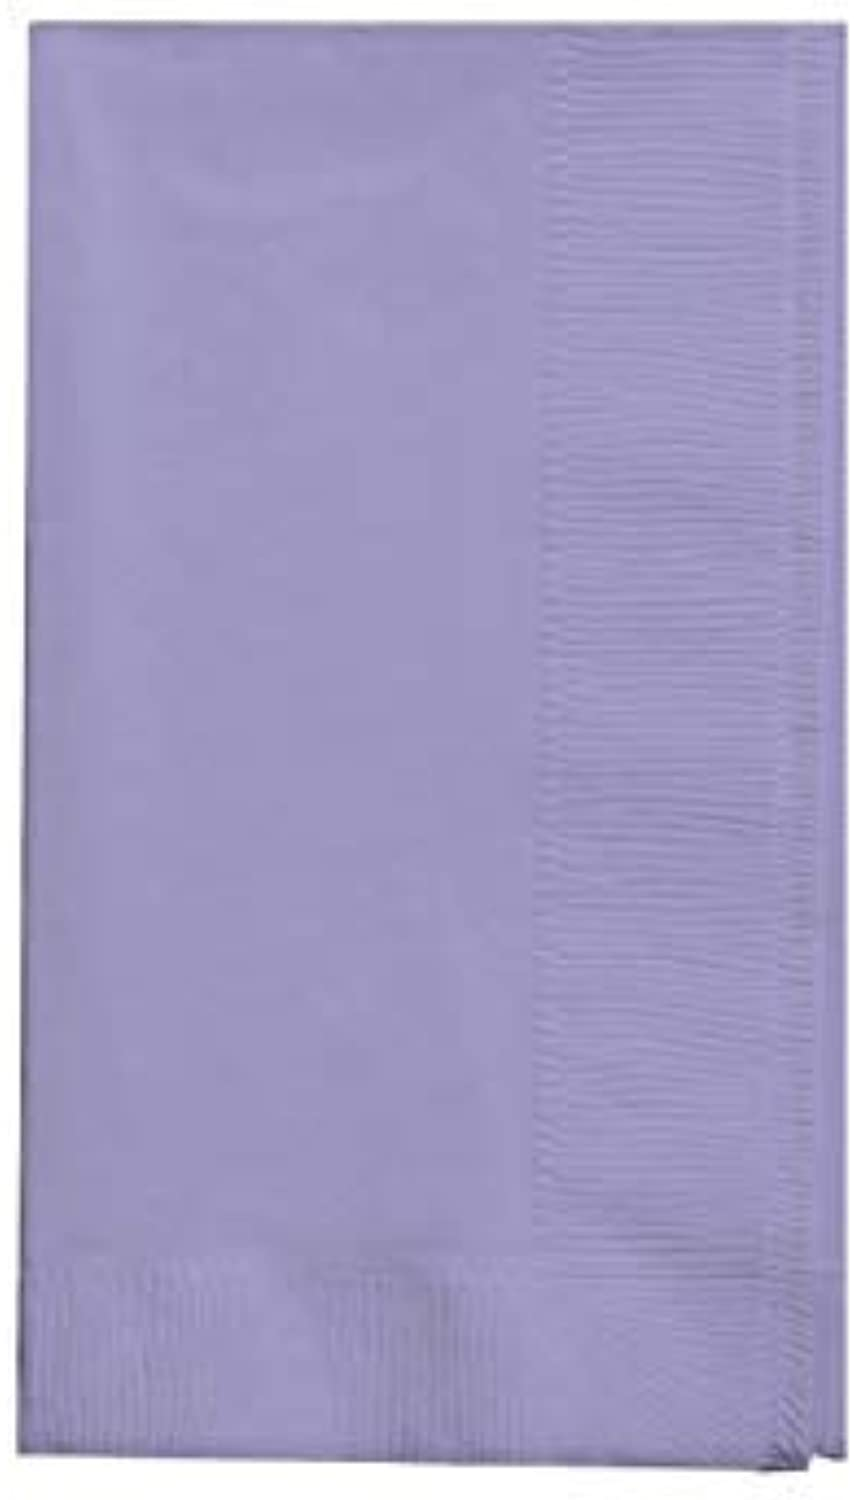 7.5\ x 4.25\, Dinner Napkin, Lavender   Creative Congreening Touch of color 2Ply 50 Count Paper Dinner Napkins, Luscious Lavender